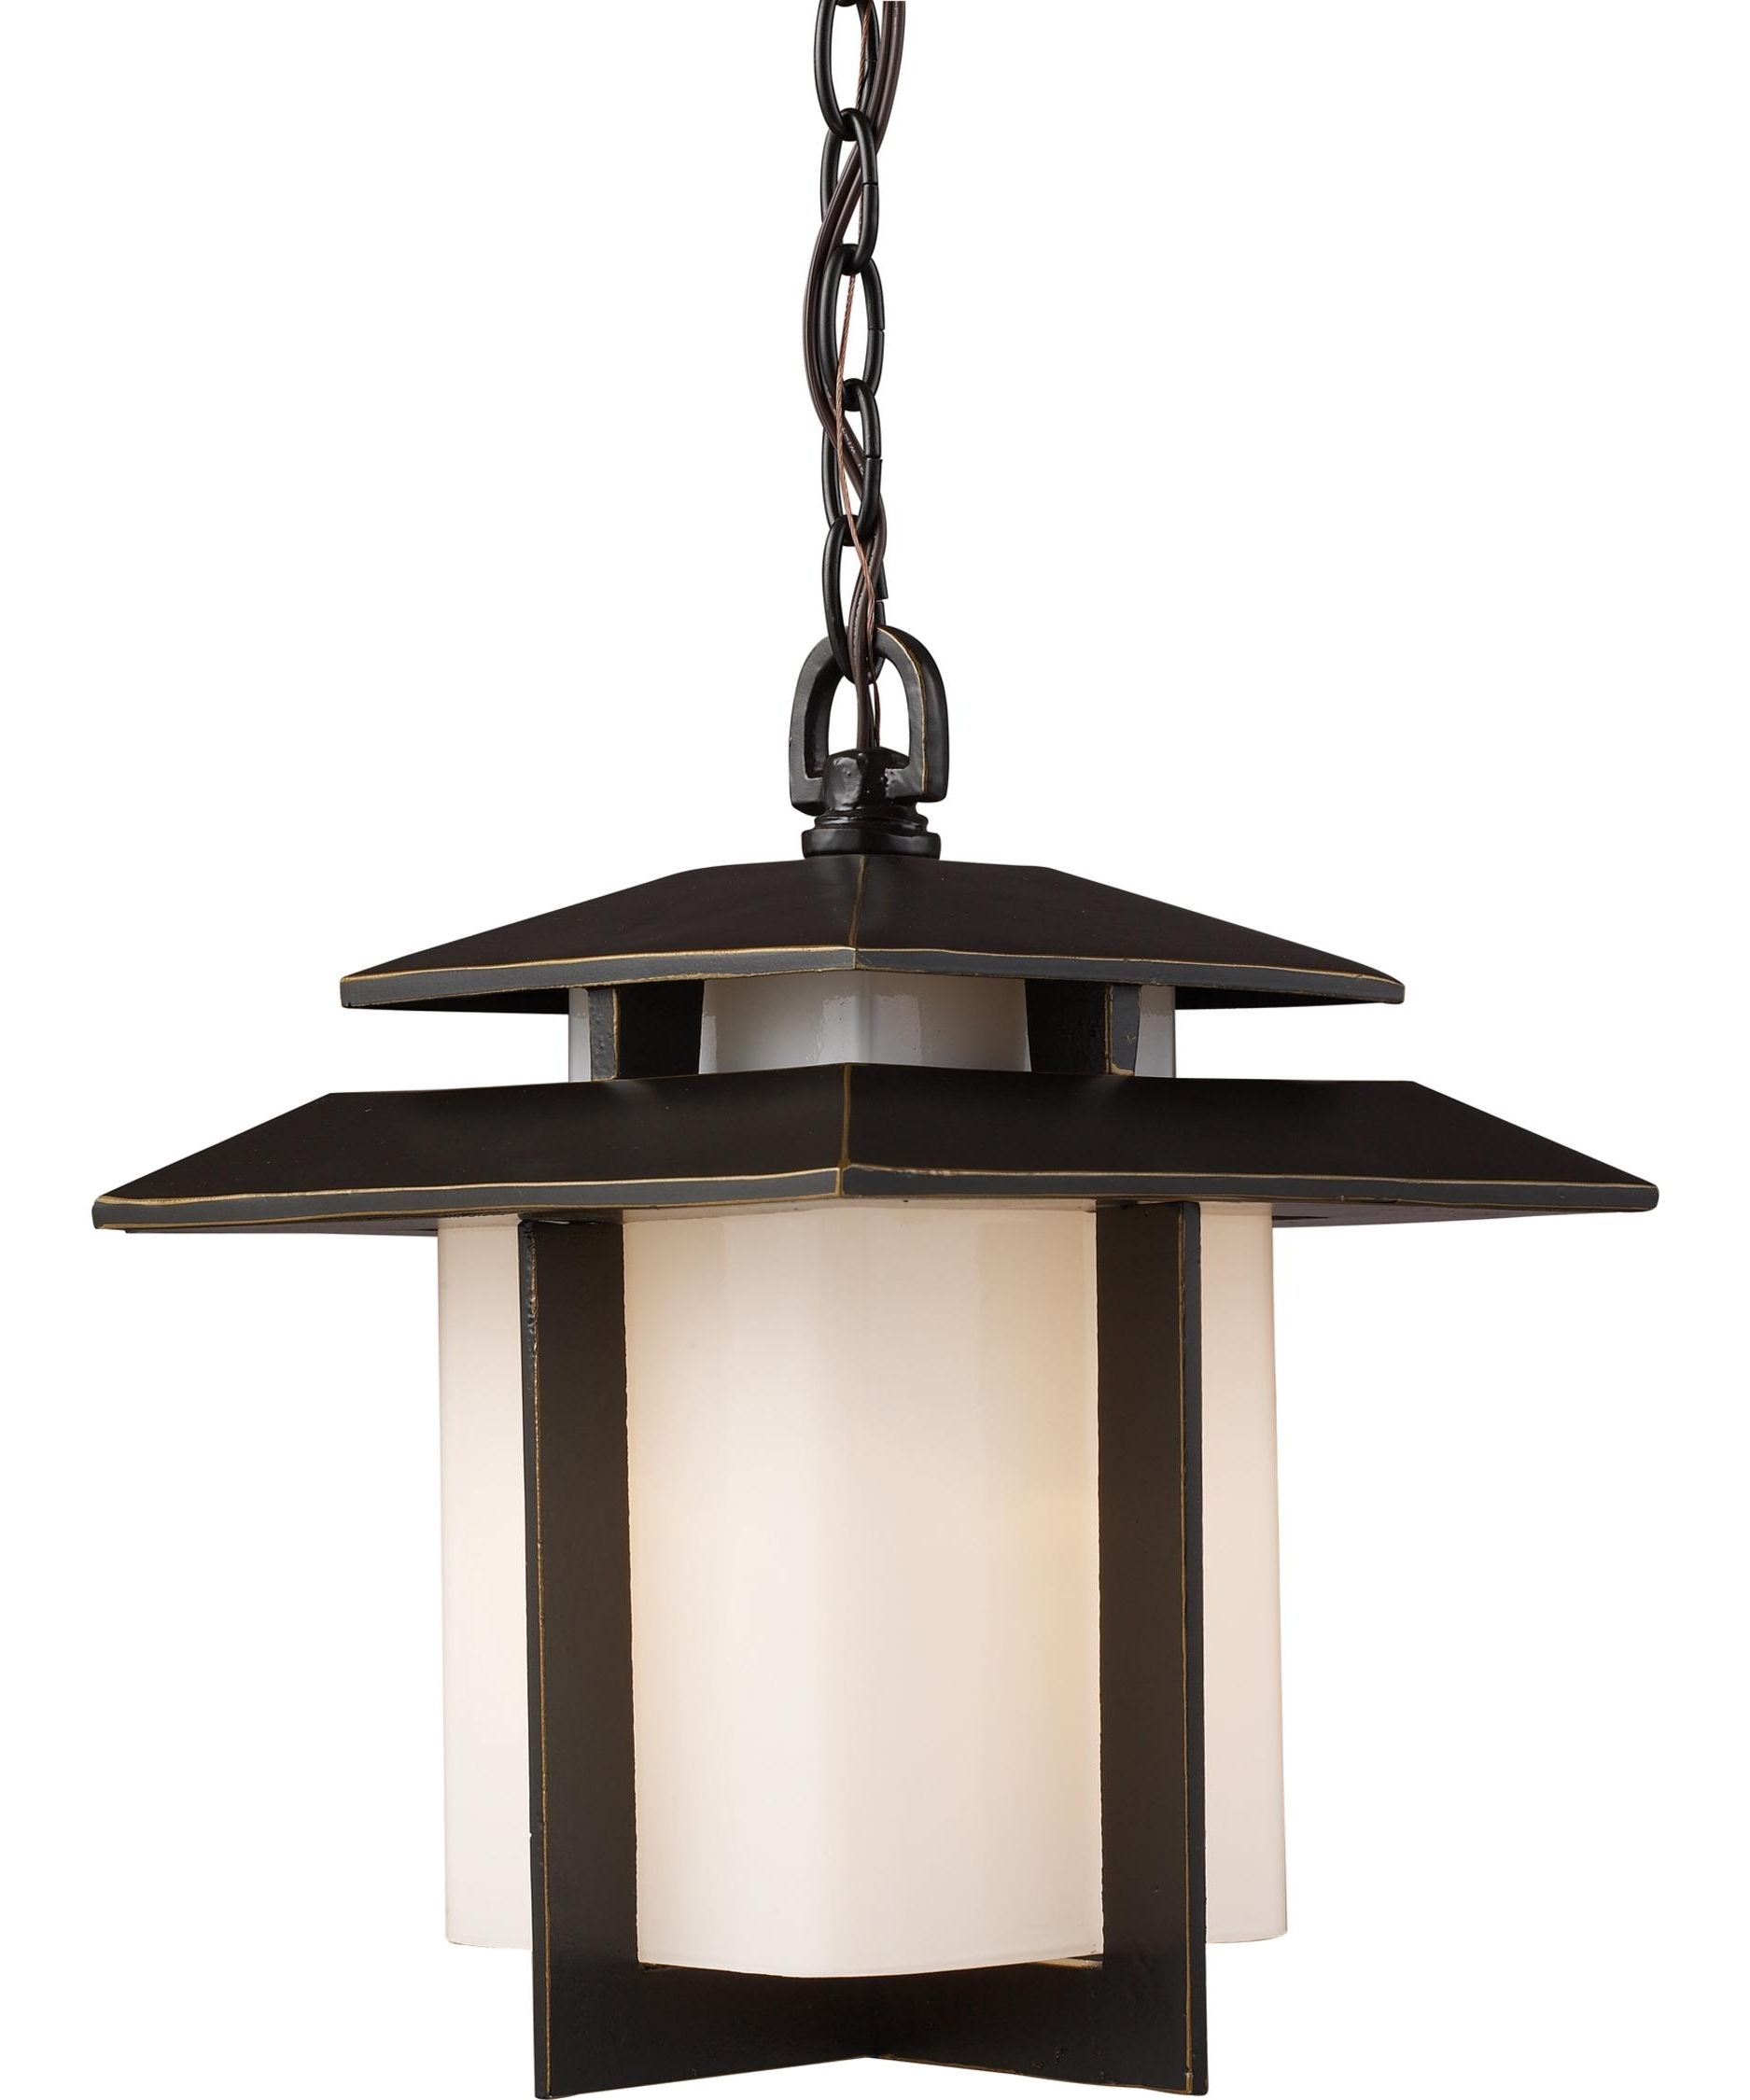 Light : Outdoor Lighting Ideas Without Electricity Exterior Fixtures For Popular Modern Outdoor Pendant Lighting Fixtures (View 5 of 20)